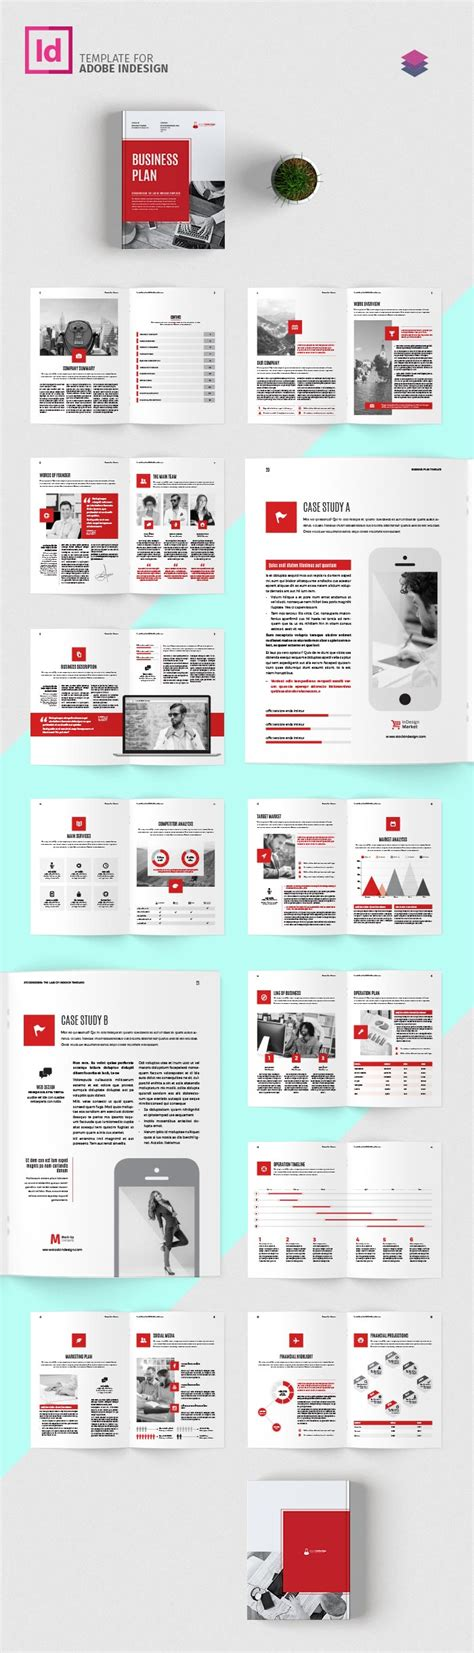 business plan template adobe indesign templates